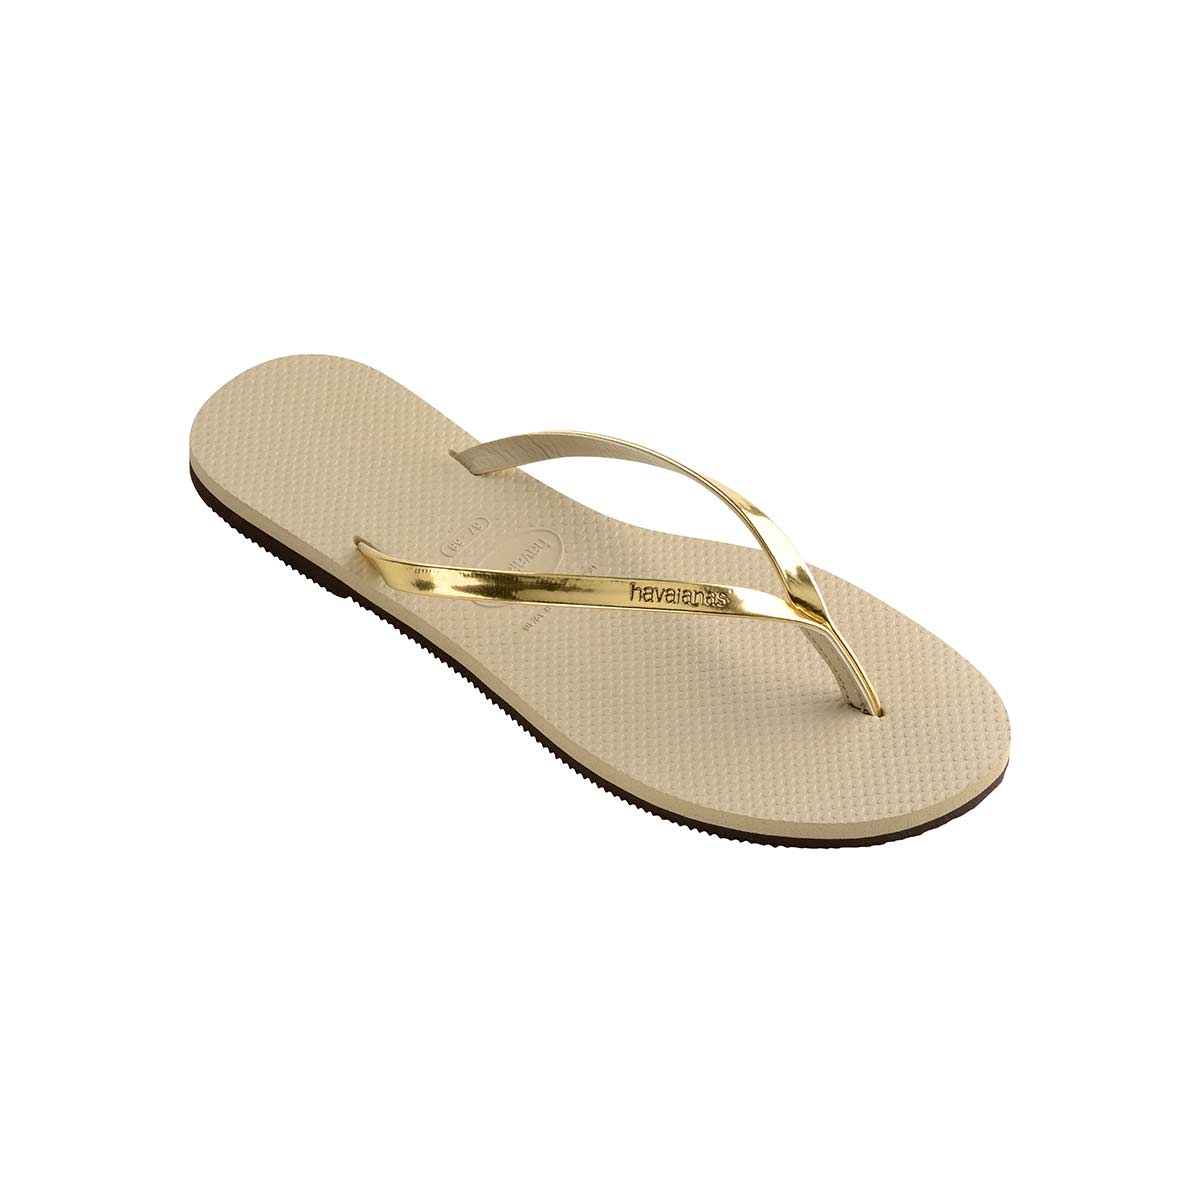 You Chanclas Arena Beige Chanclas You Arena Metallic Beige hQxsrdCt